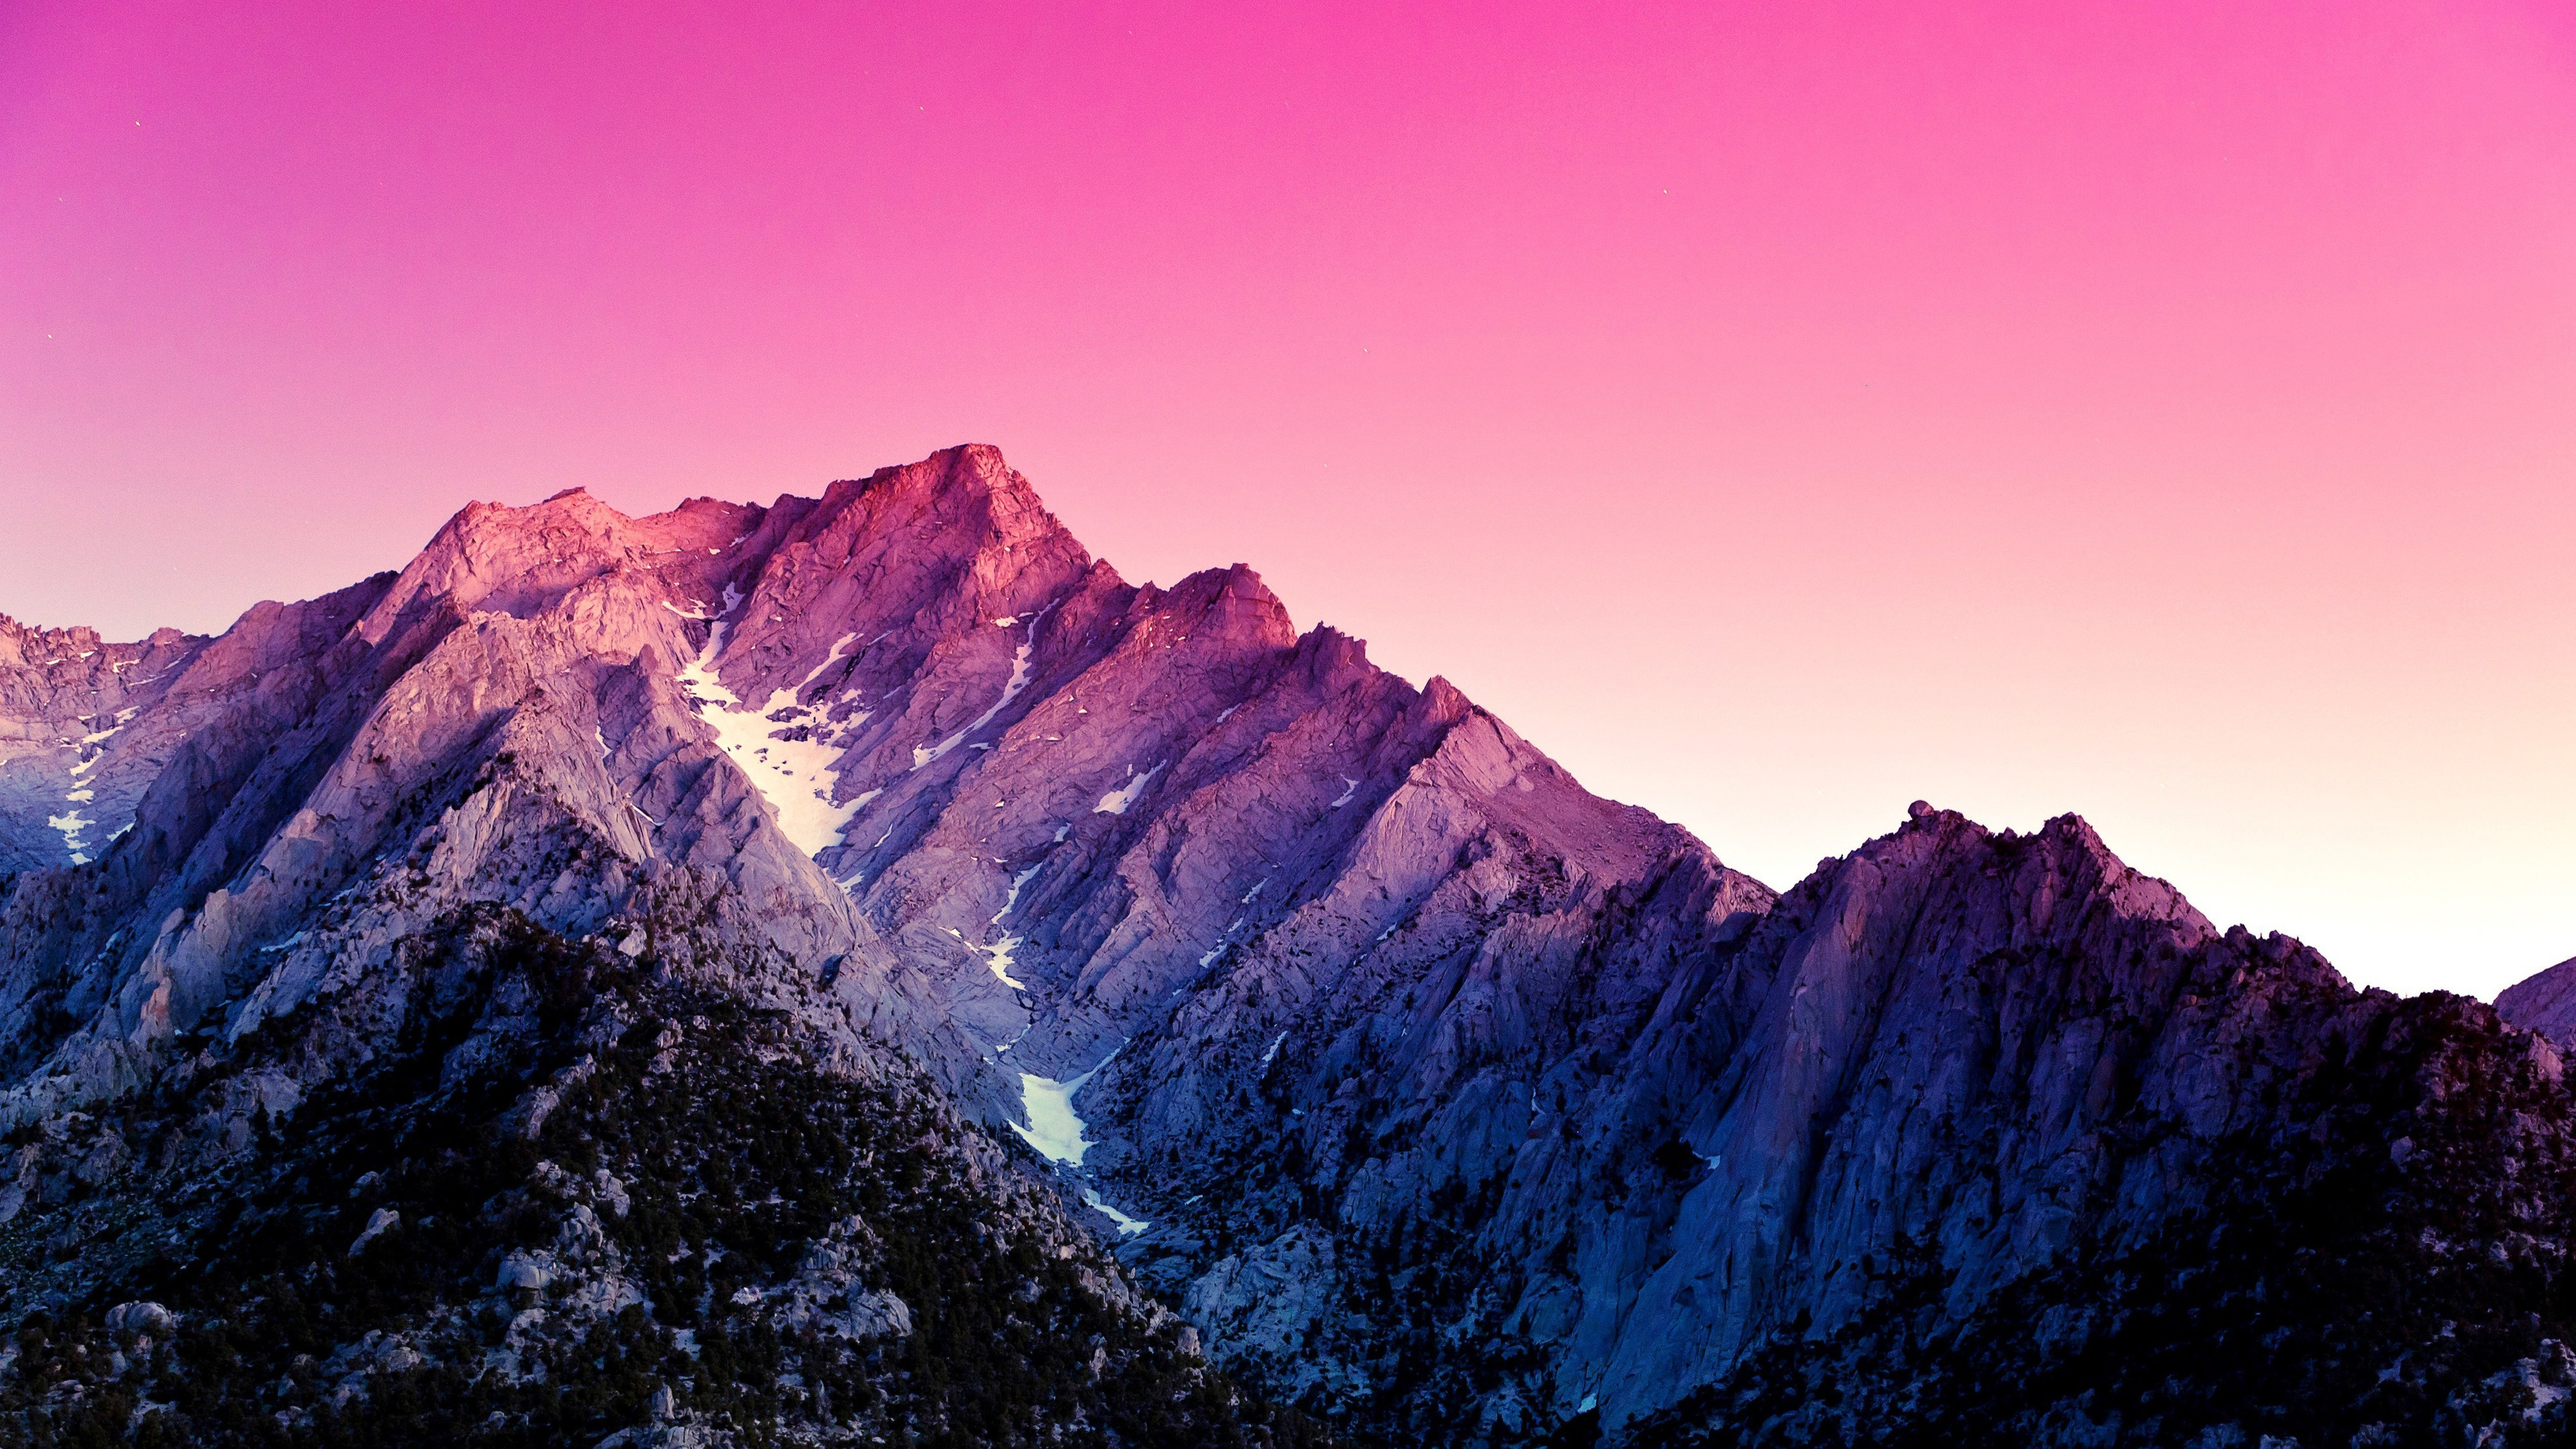 android mountains wallpapers in jpg format for free download